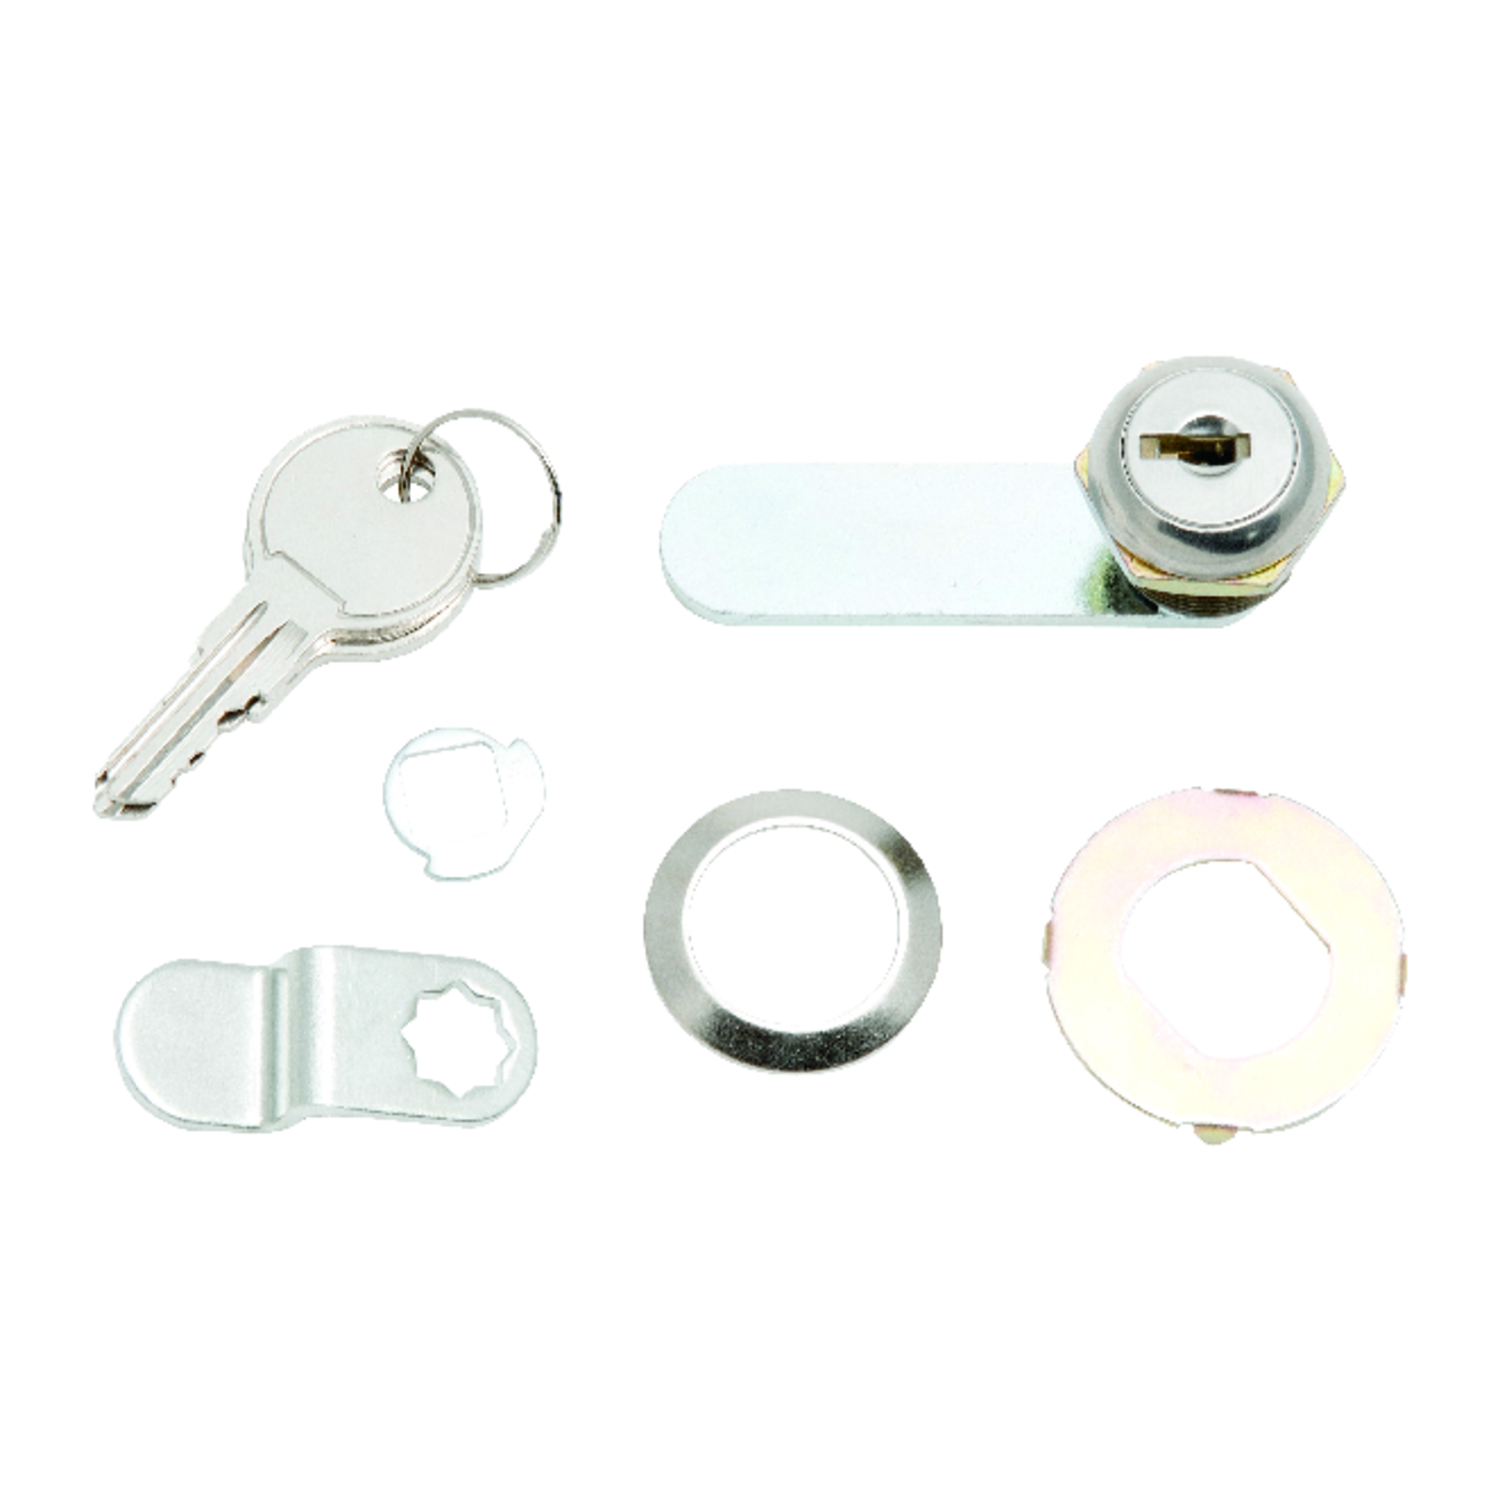 Ace Keyed Cam Lock Keyed Different 1/4 in., 3/8 in. Chrome